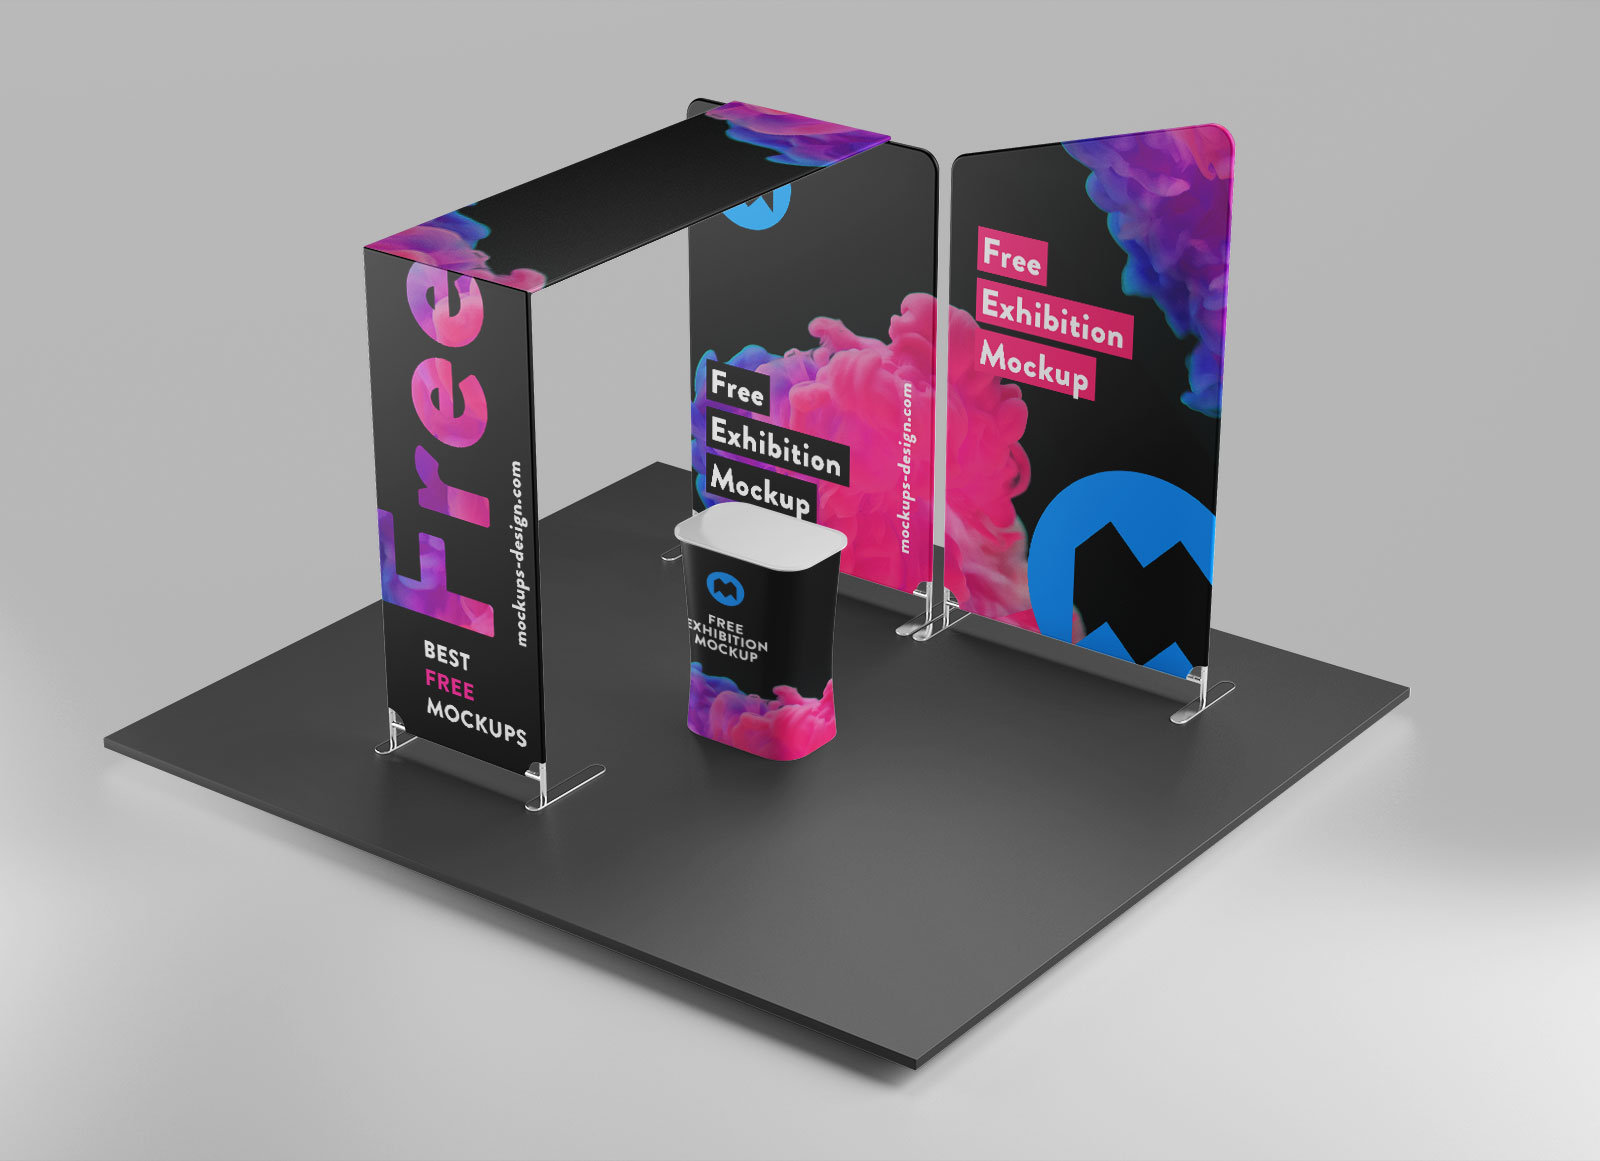 Free Pop Up Exhibition Stand Mockup : Free trade show exhibition display booth stand mockup psd